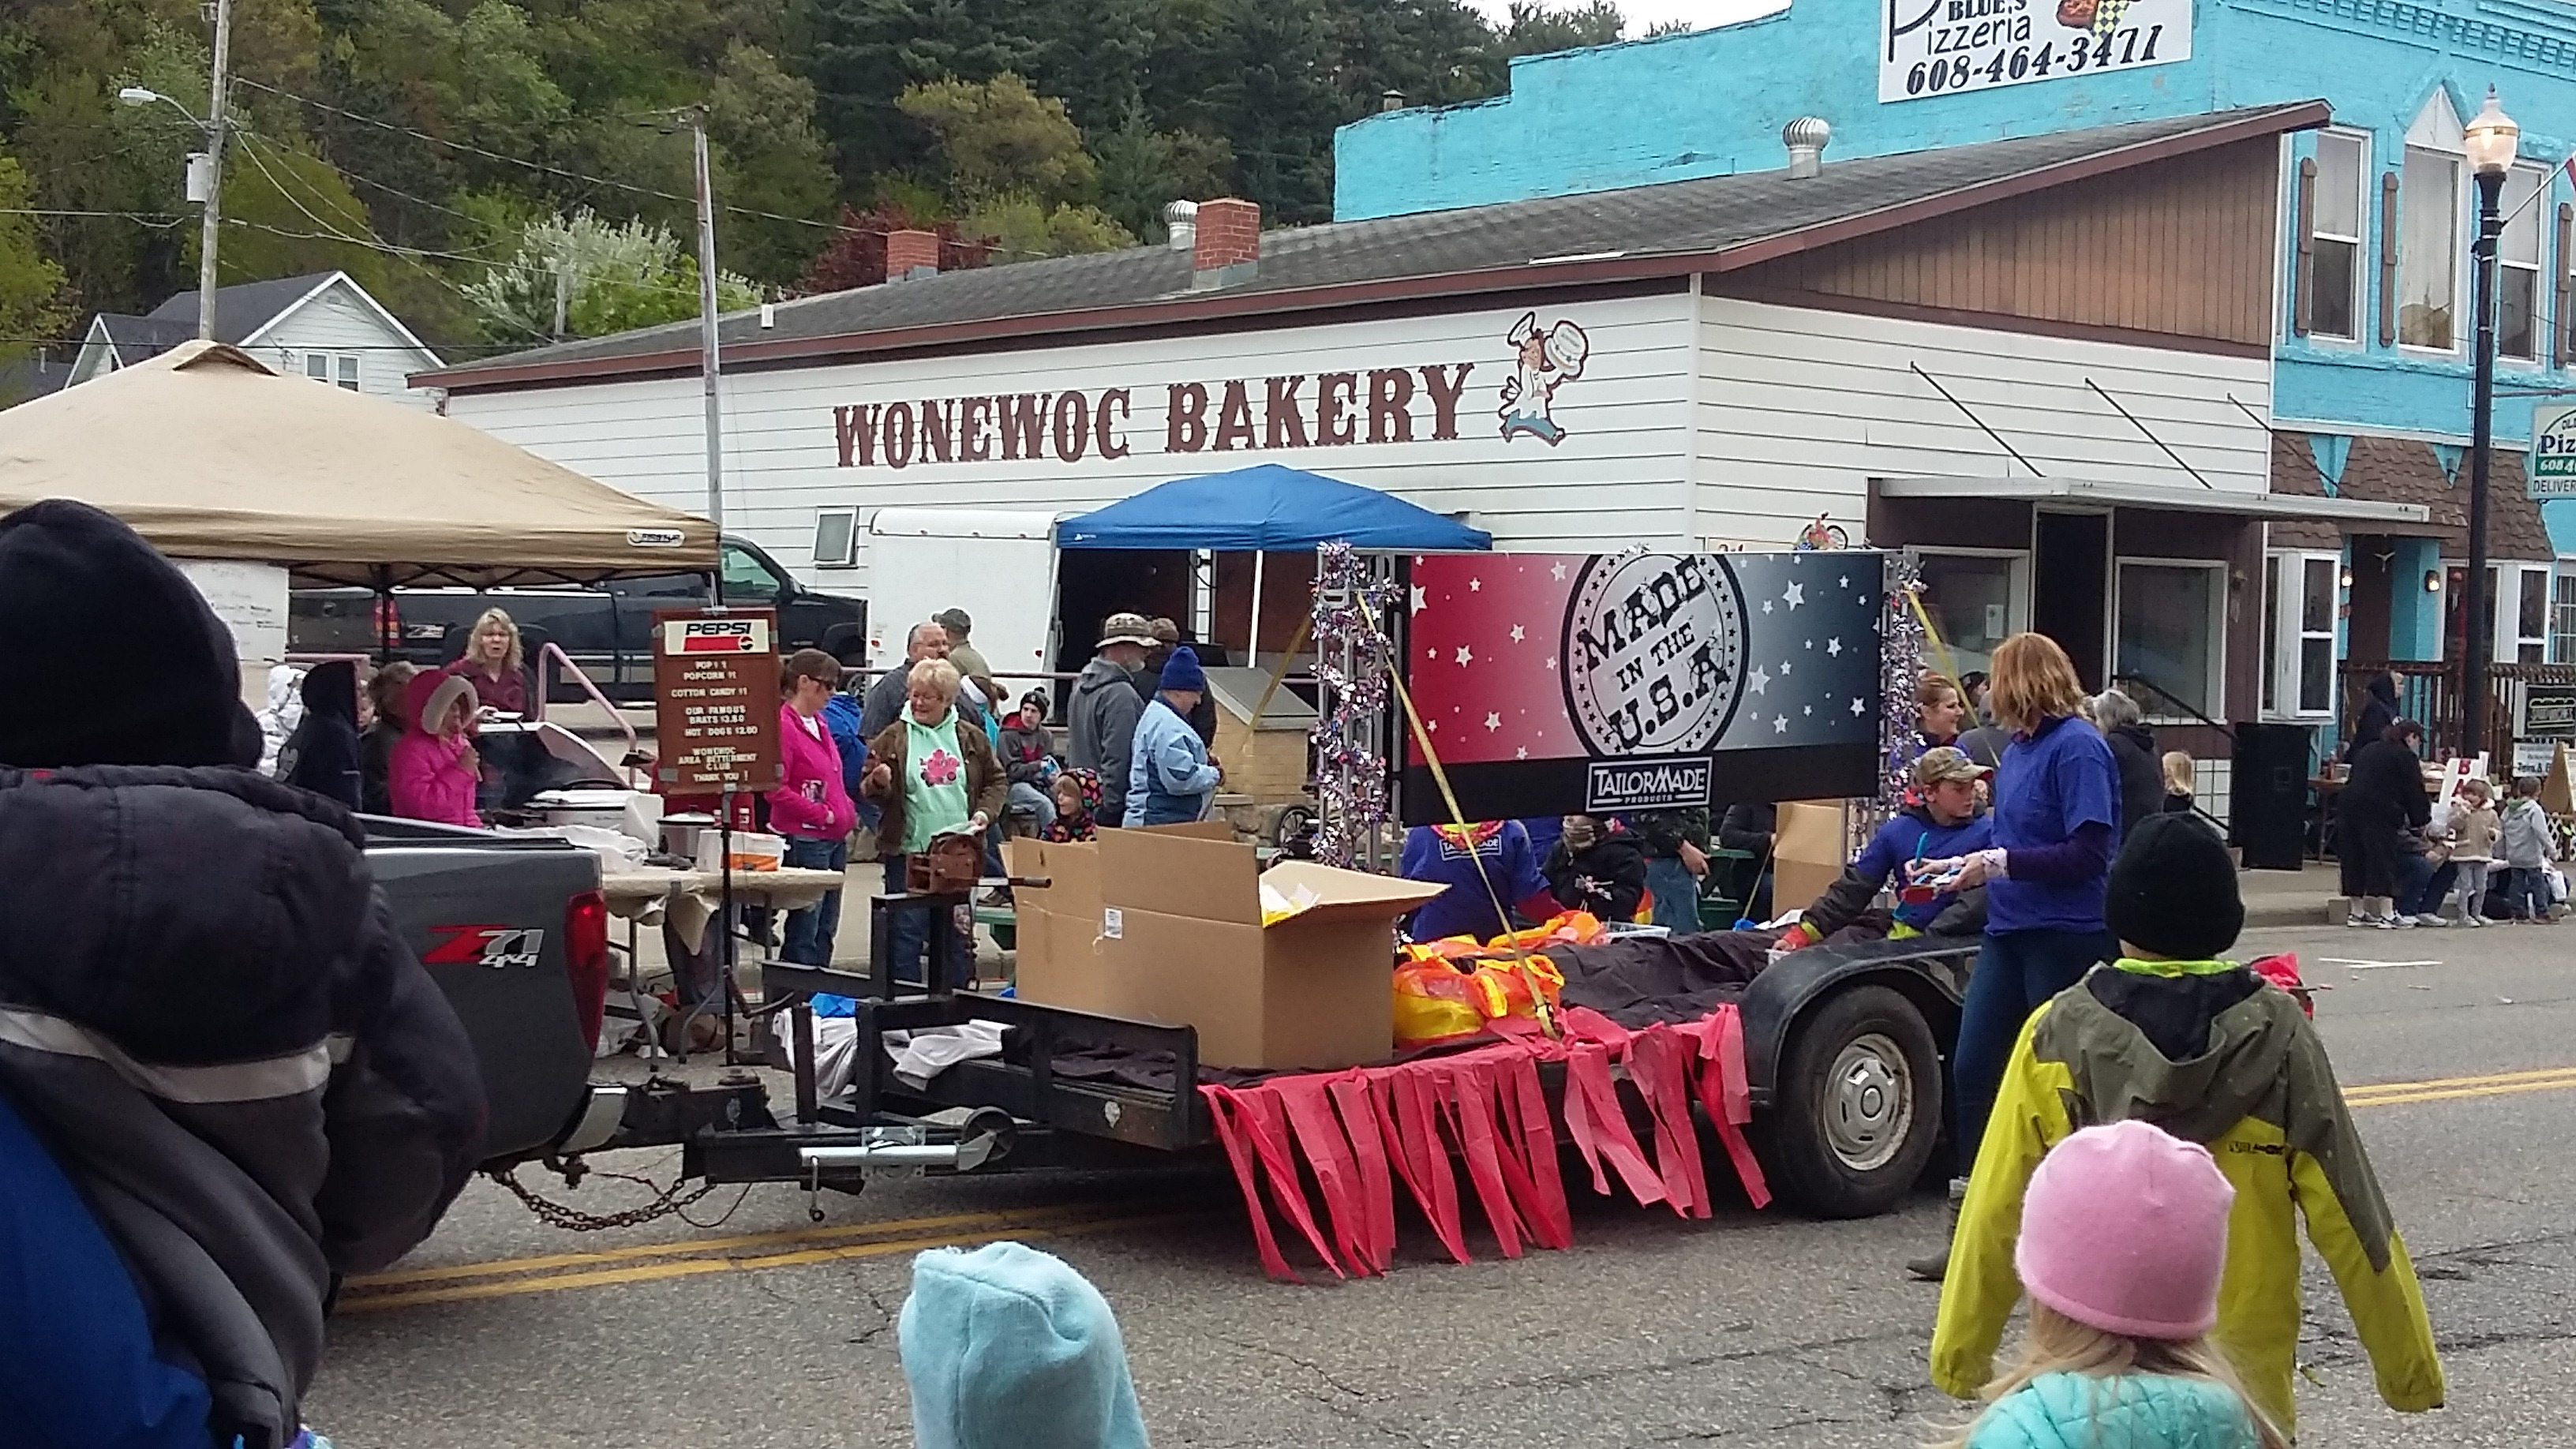 Old Fashioned Day | Village of Wonewoc, Juneau County, Wisconsin